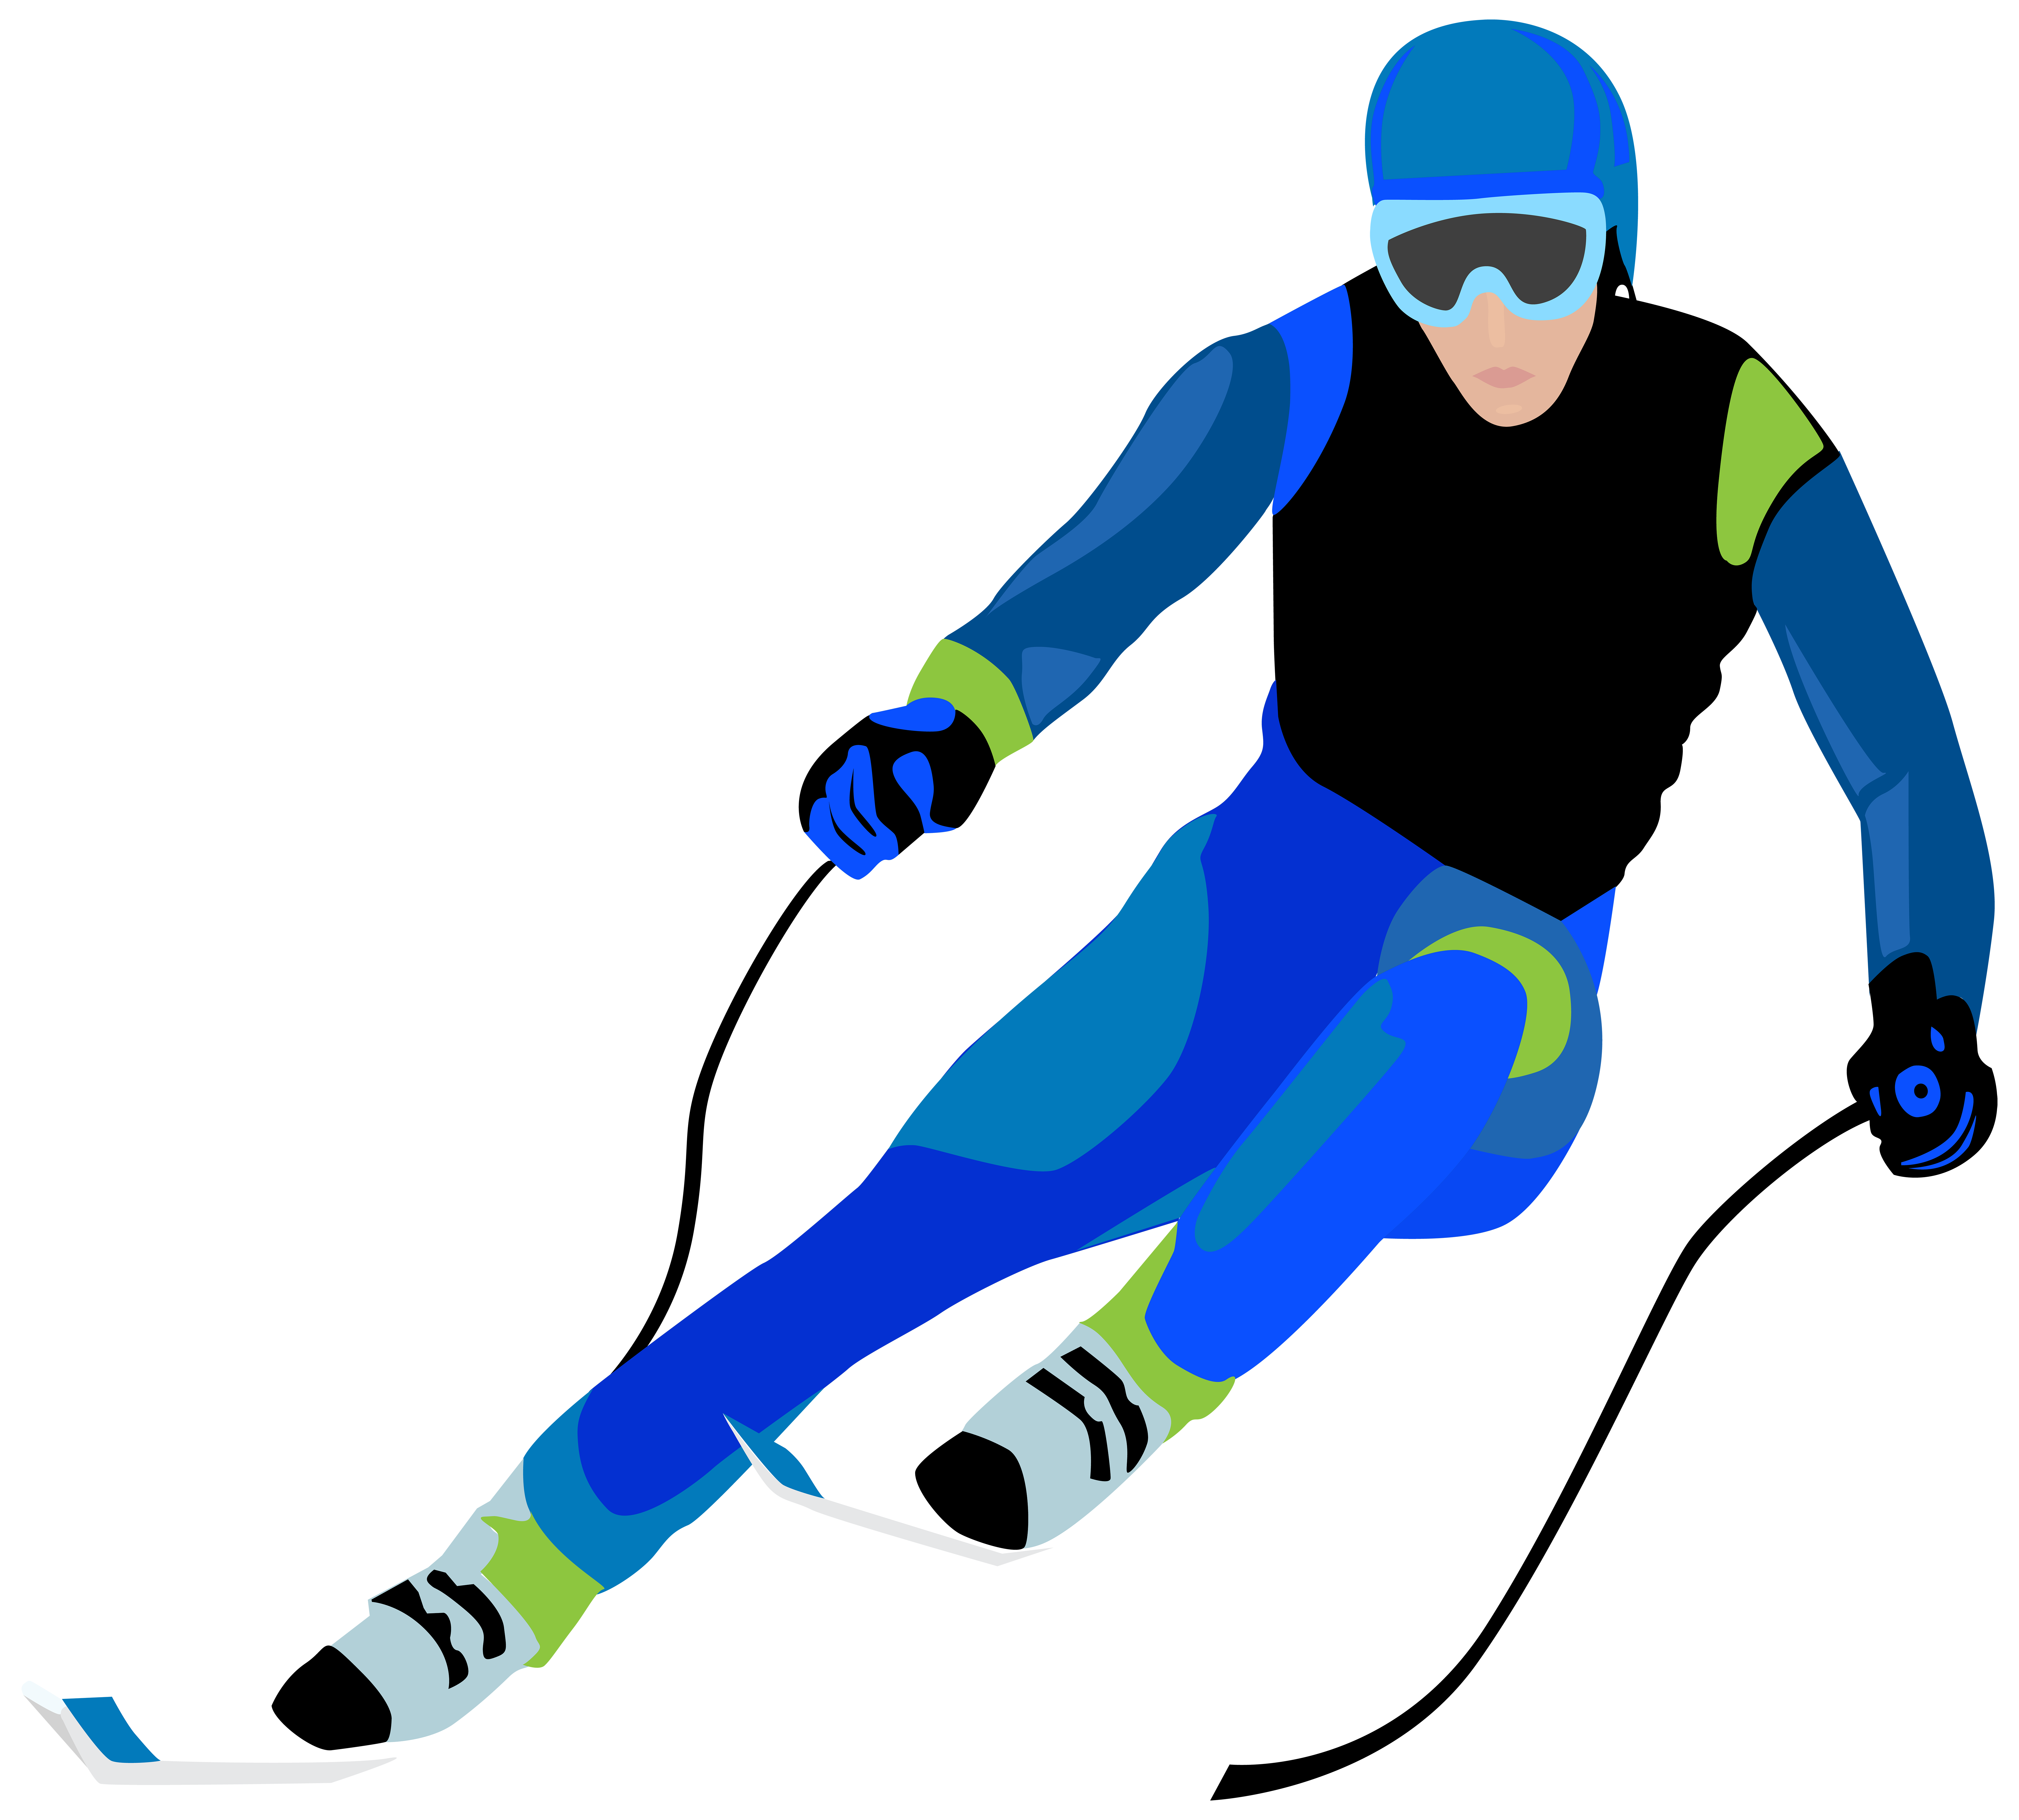 Skier clipart. Clip art image gallery